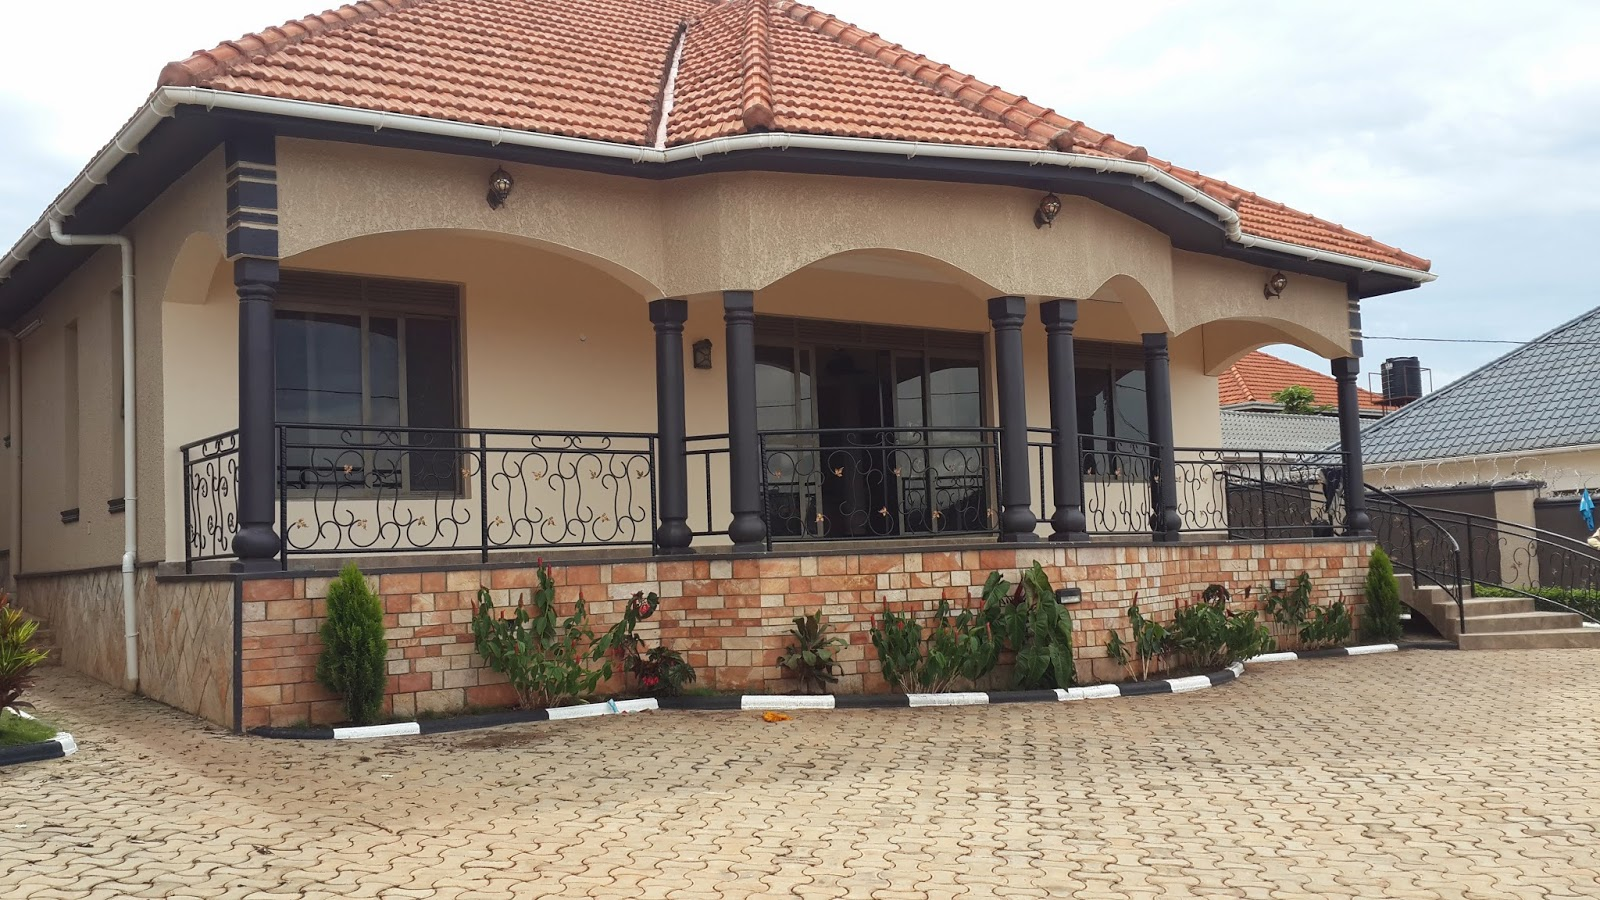 Ugandan Houses With Balconies